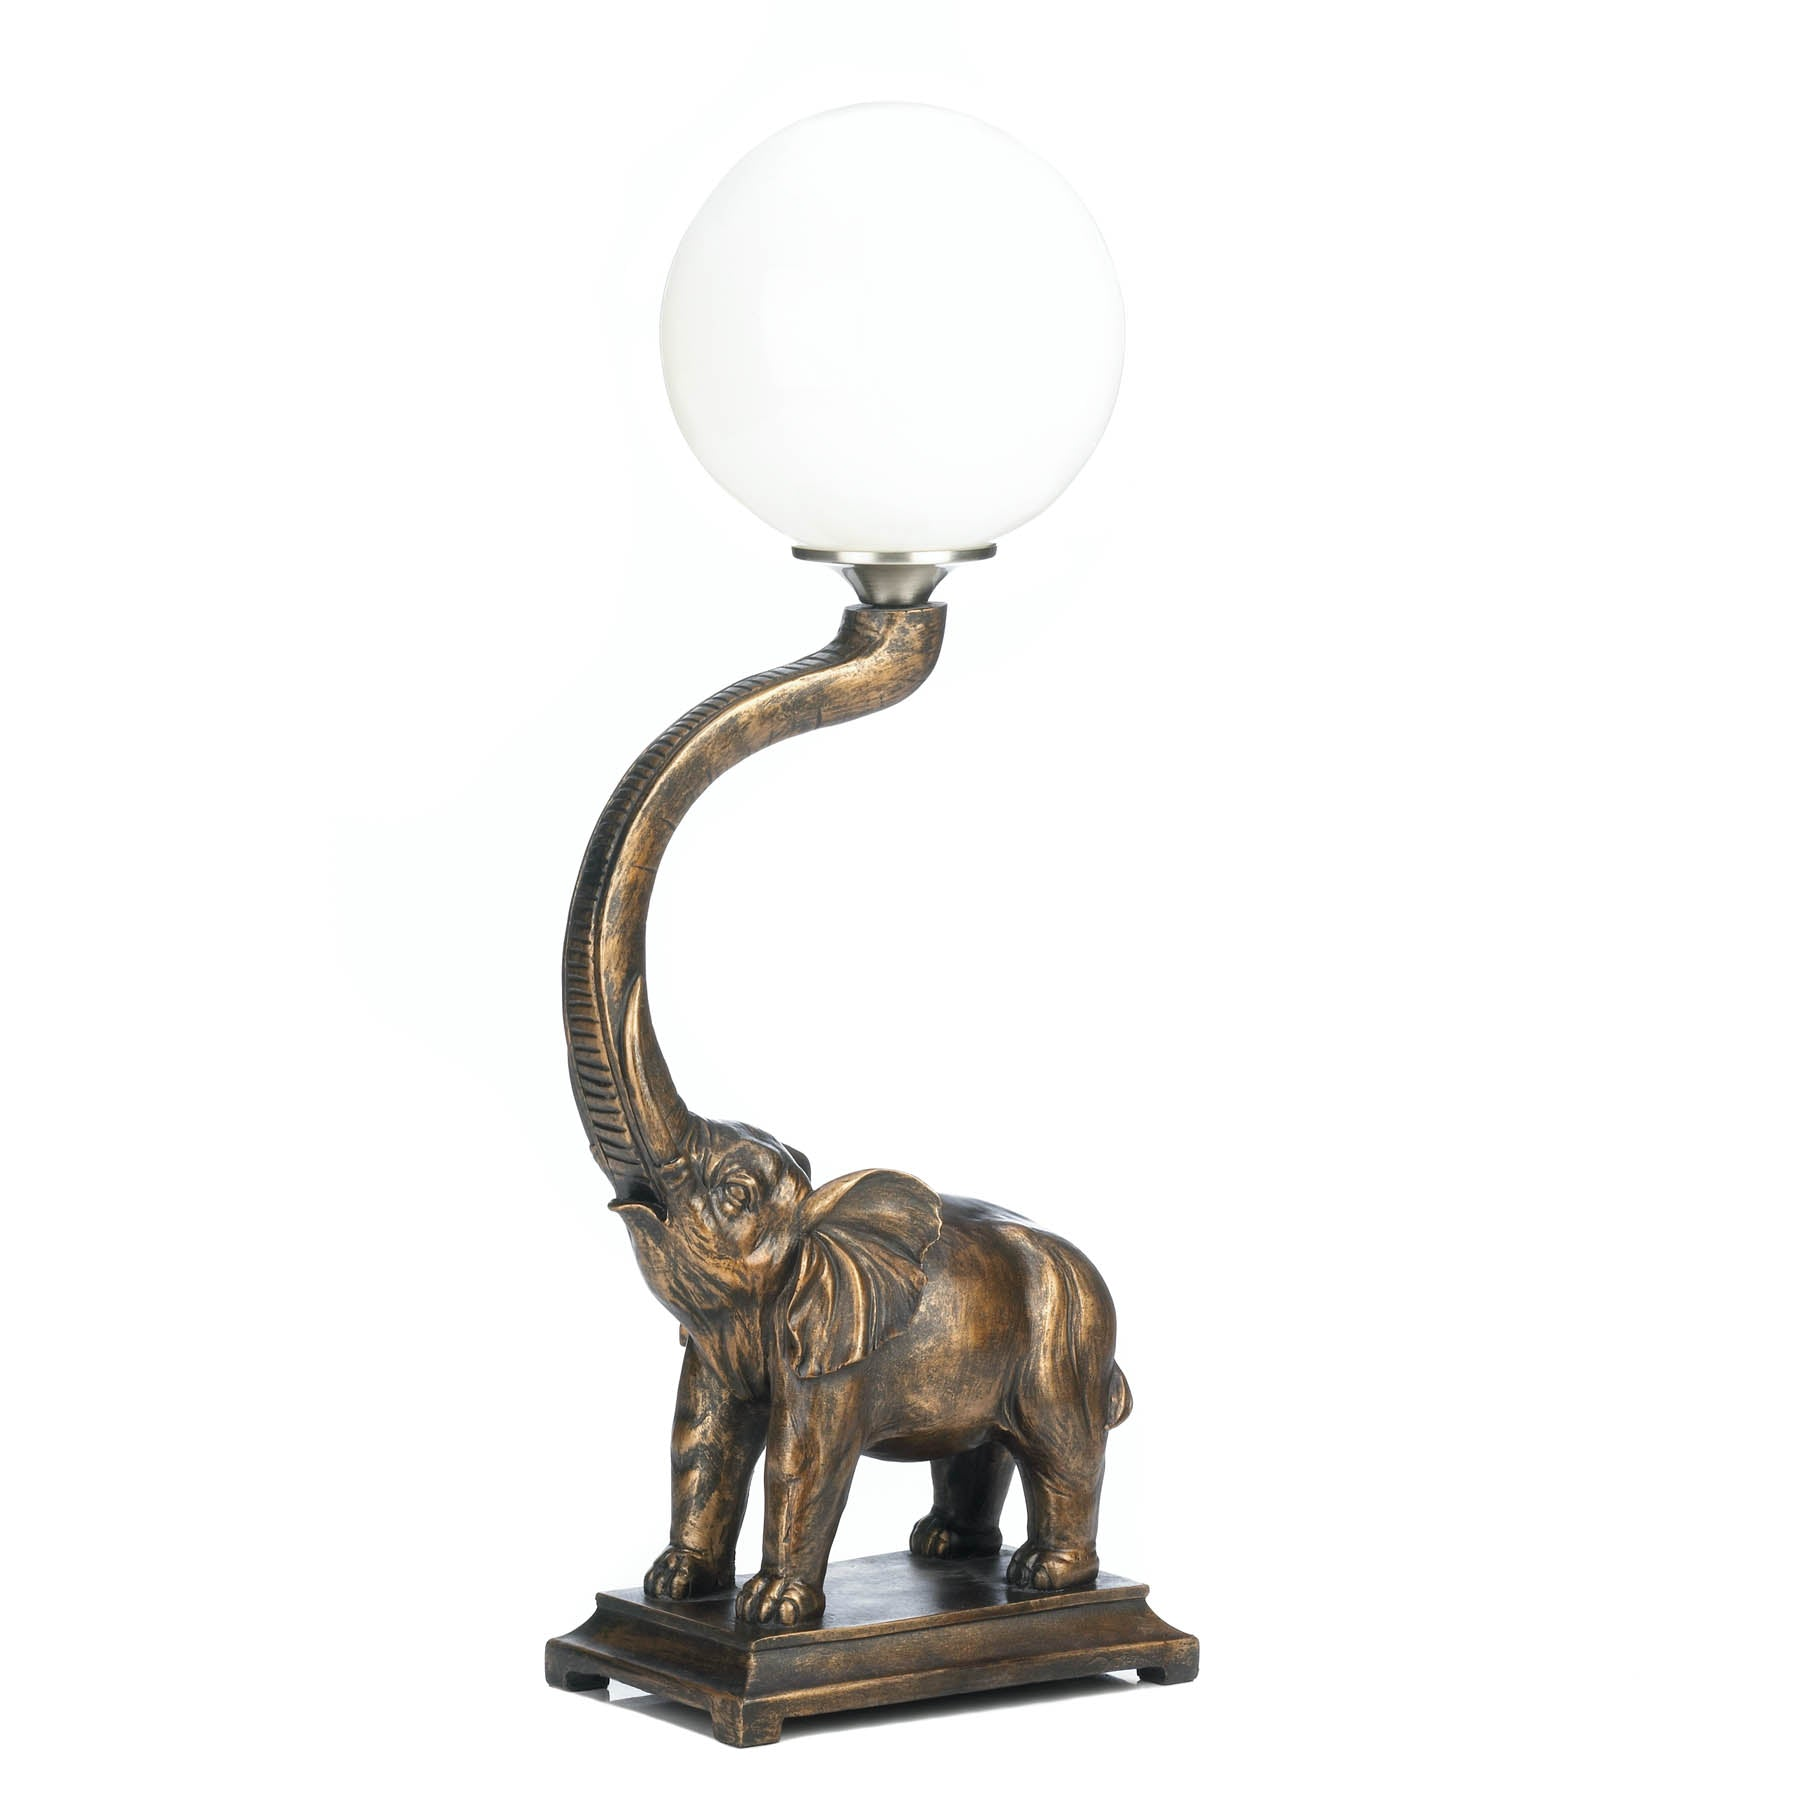 Gallery of Light Trumpeting Elephant Lamp - 10017184